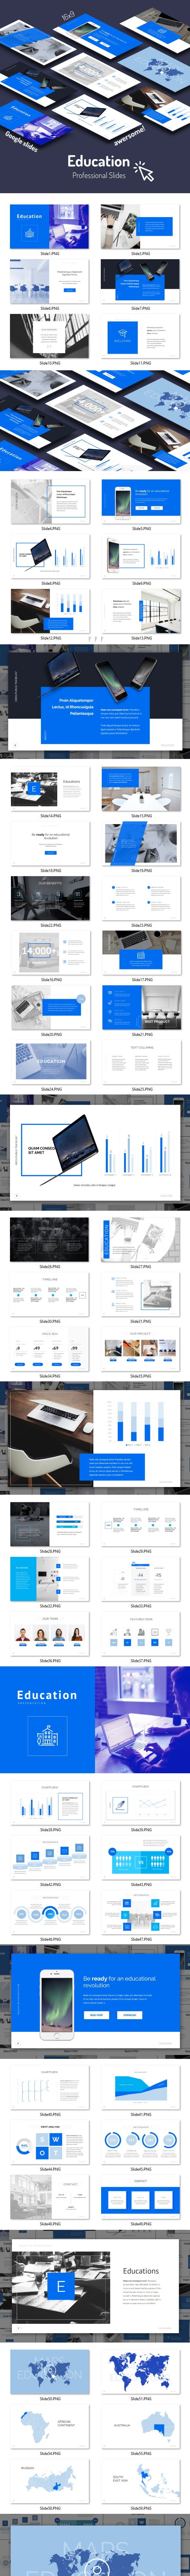 Educations - Google Slides - Google Slides Presentation Templates